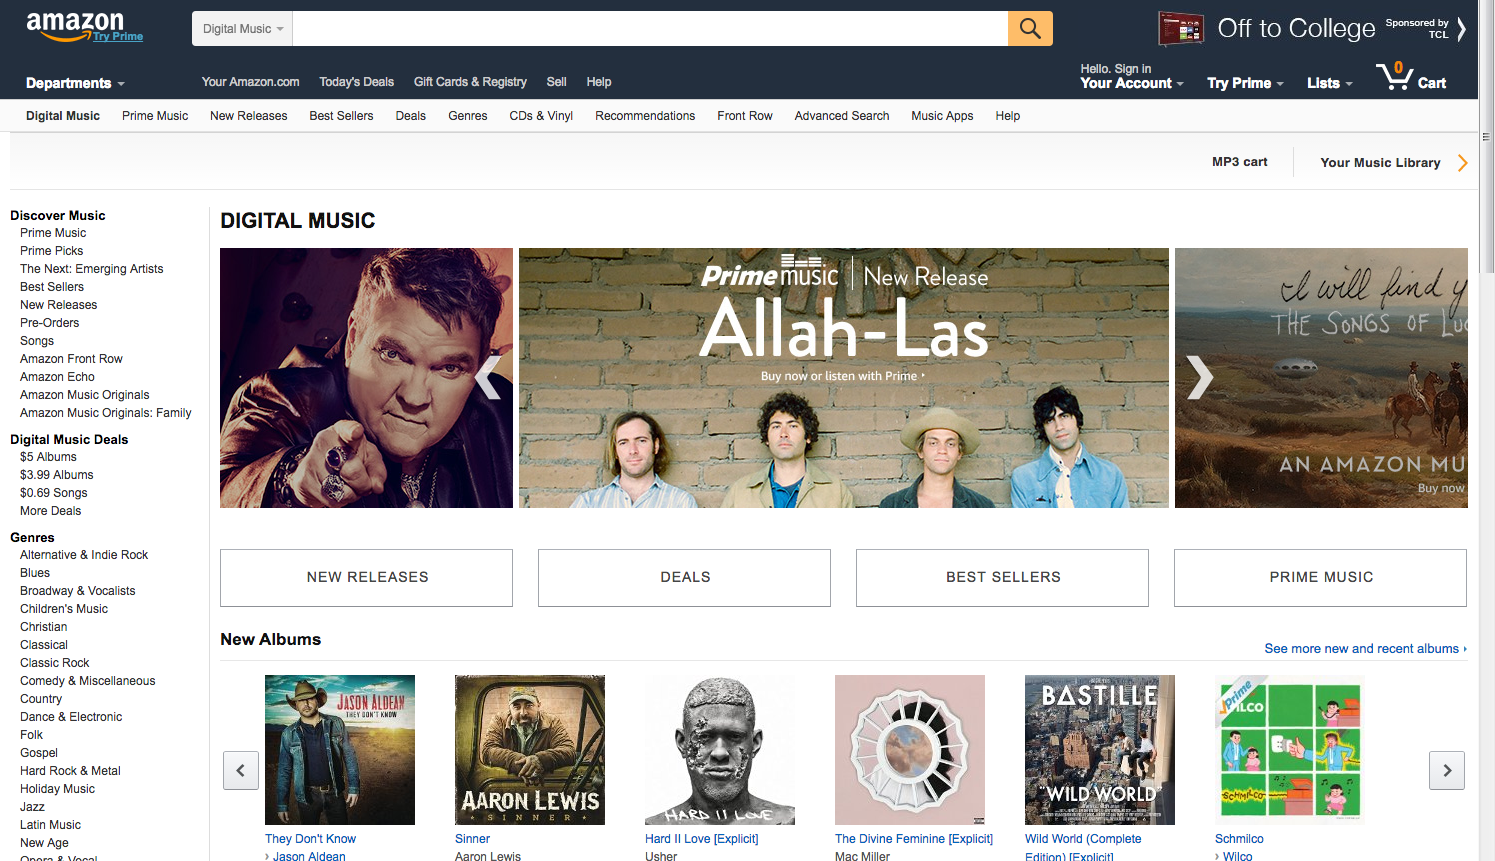 amazon-digital-music